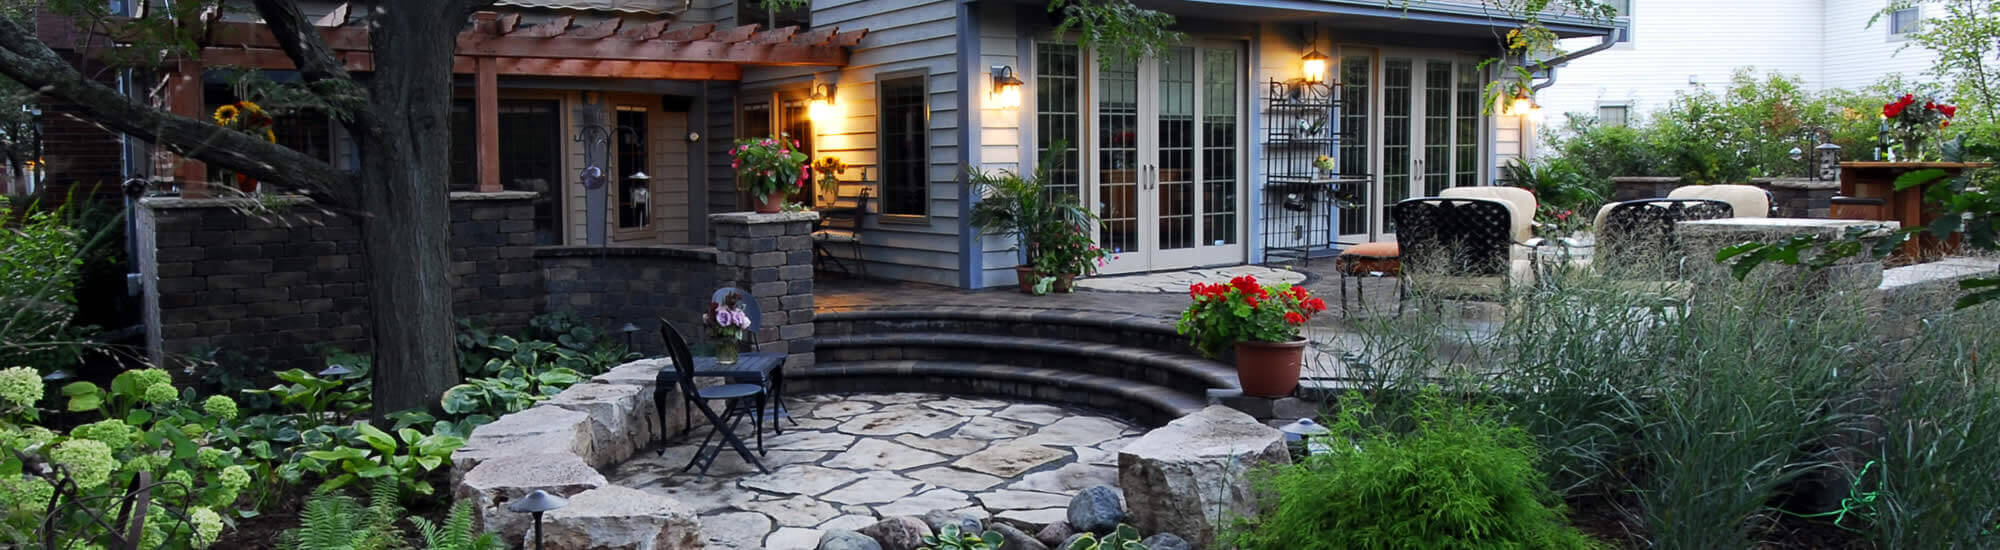 Professional Local Landscape/Hardscape Construction Services